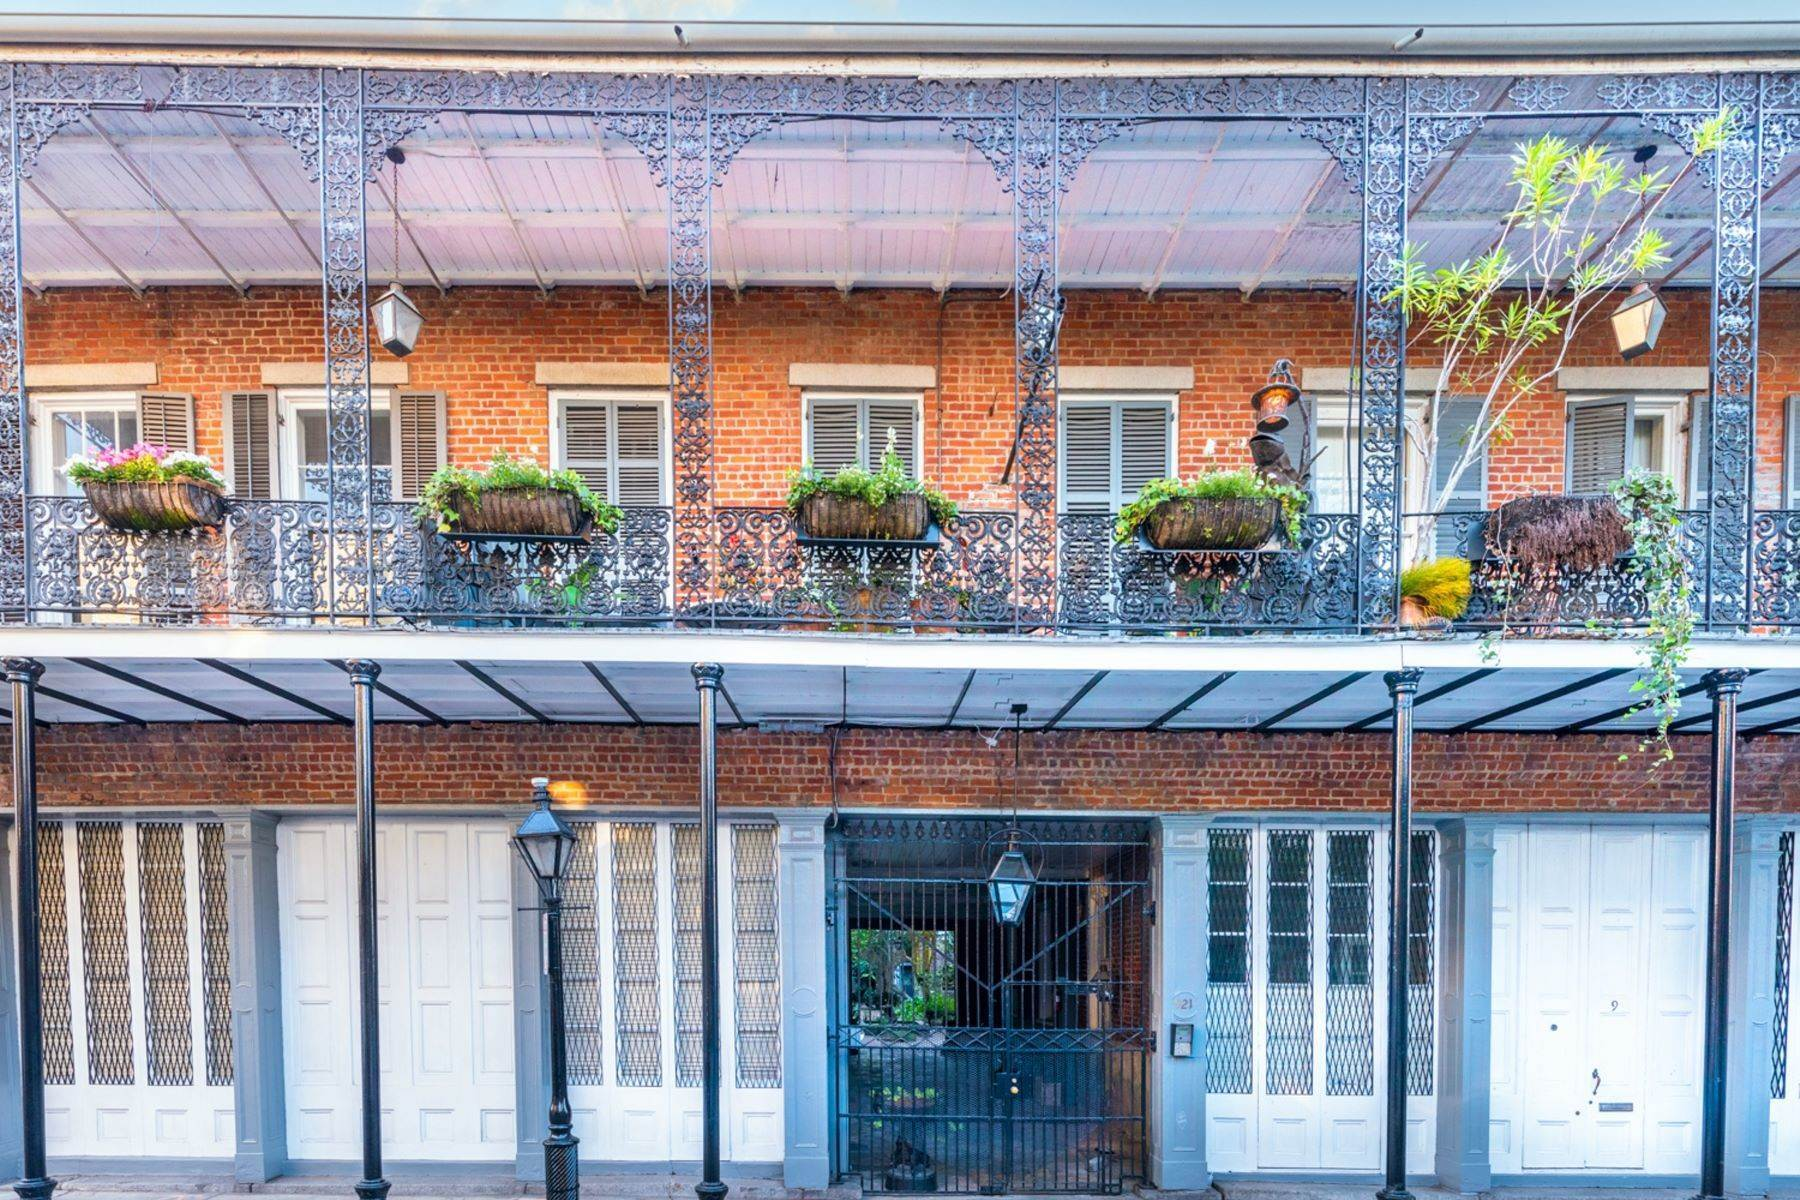 Condominiums for Sale at 921 Chartres Street, #12, French Quarter 921 Chartres St, Unit 12 New Orleans, Louisiana 70116 United States